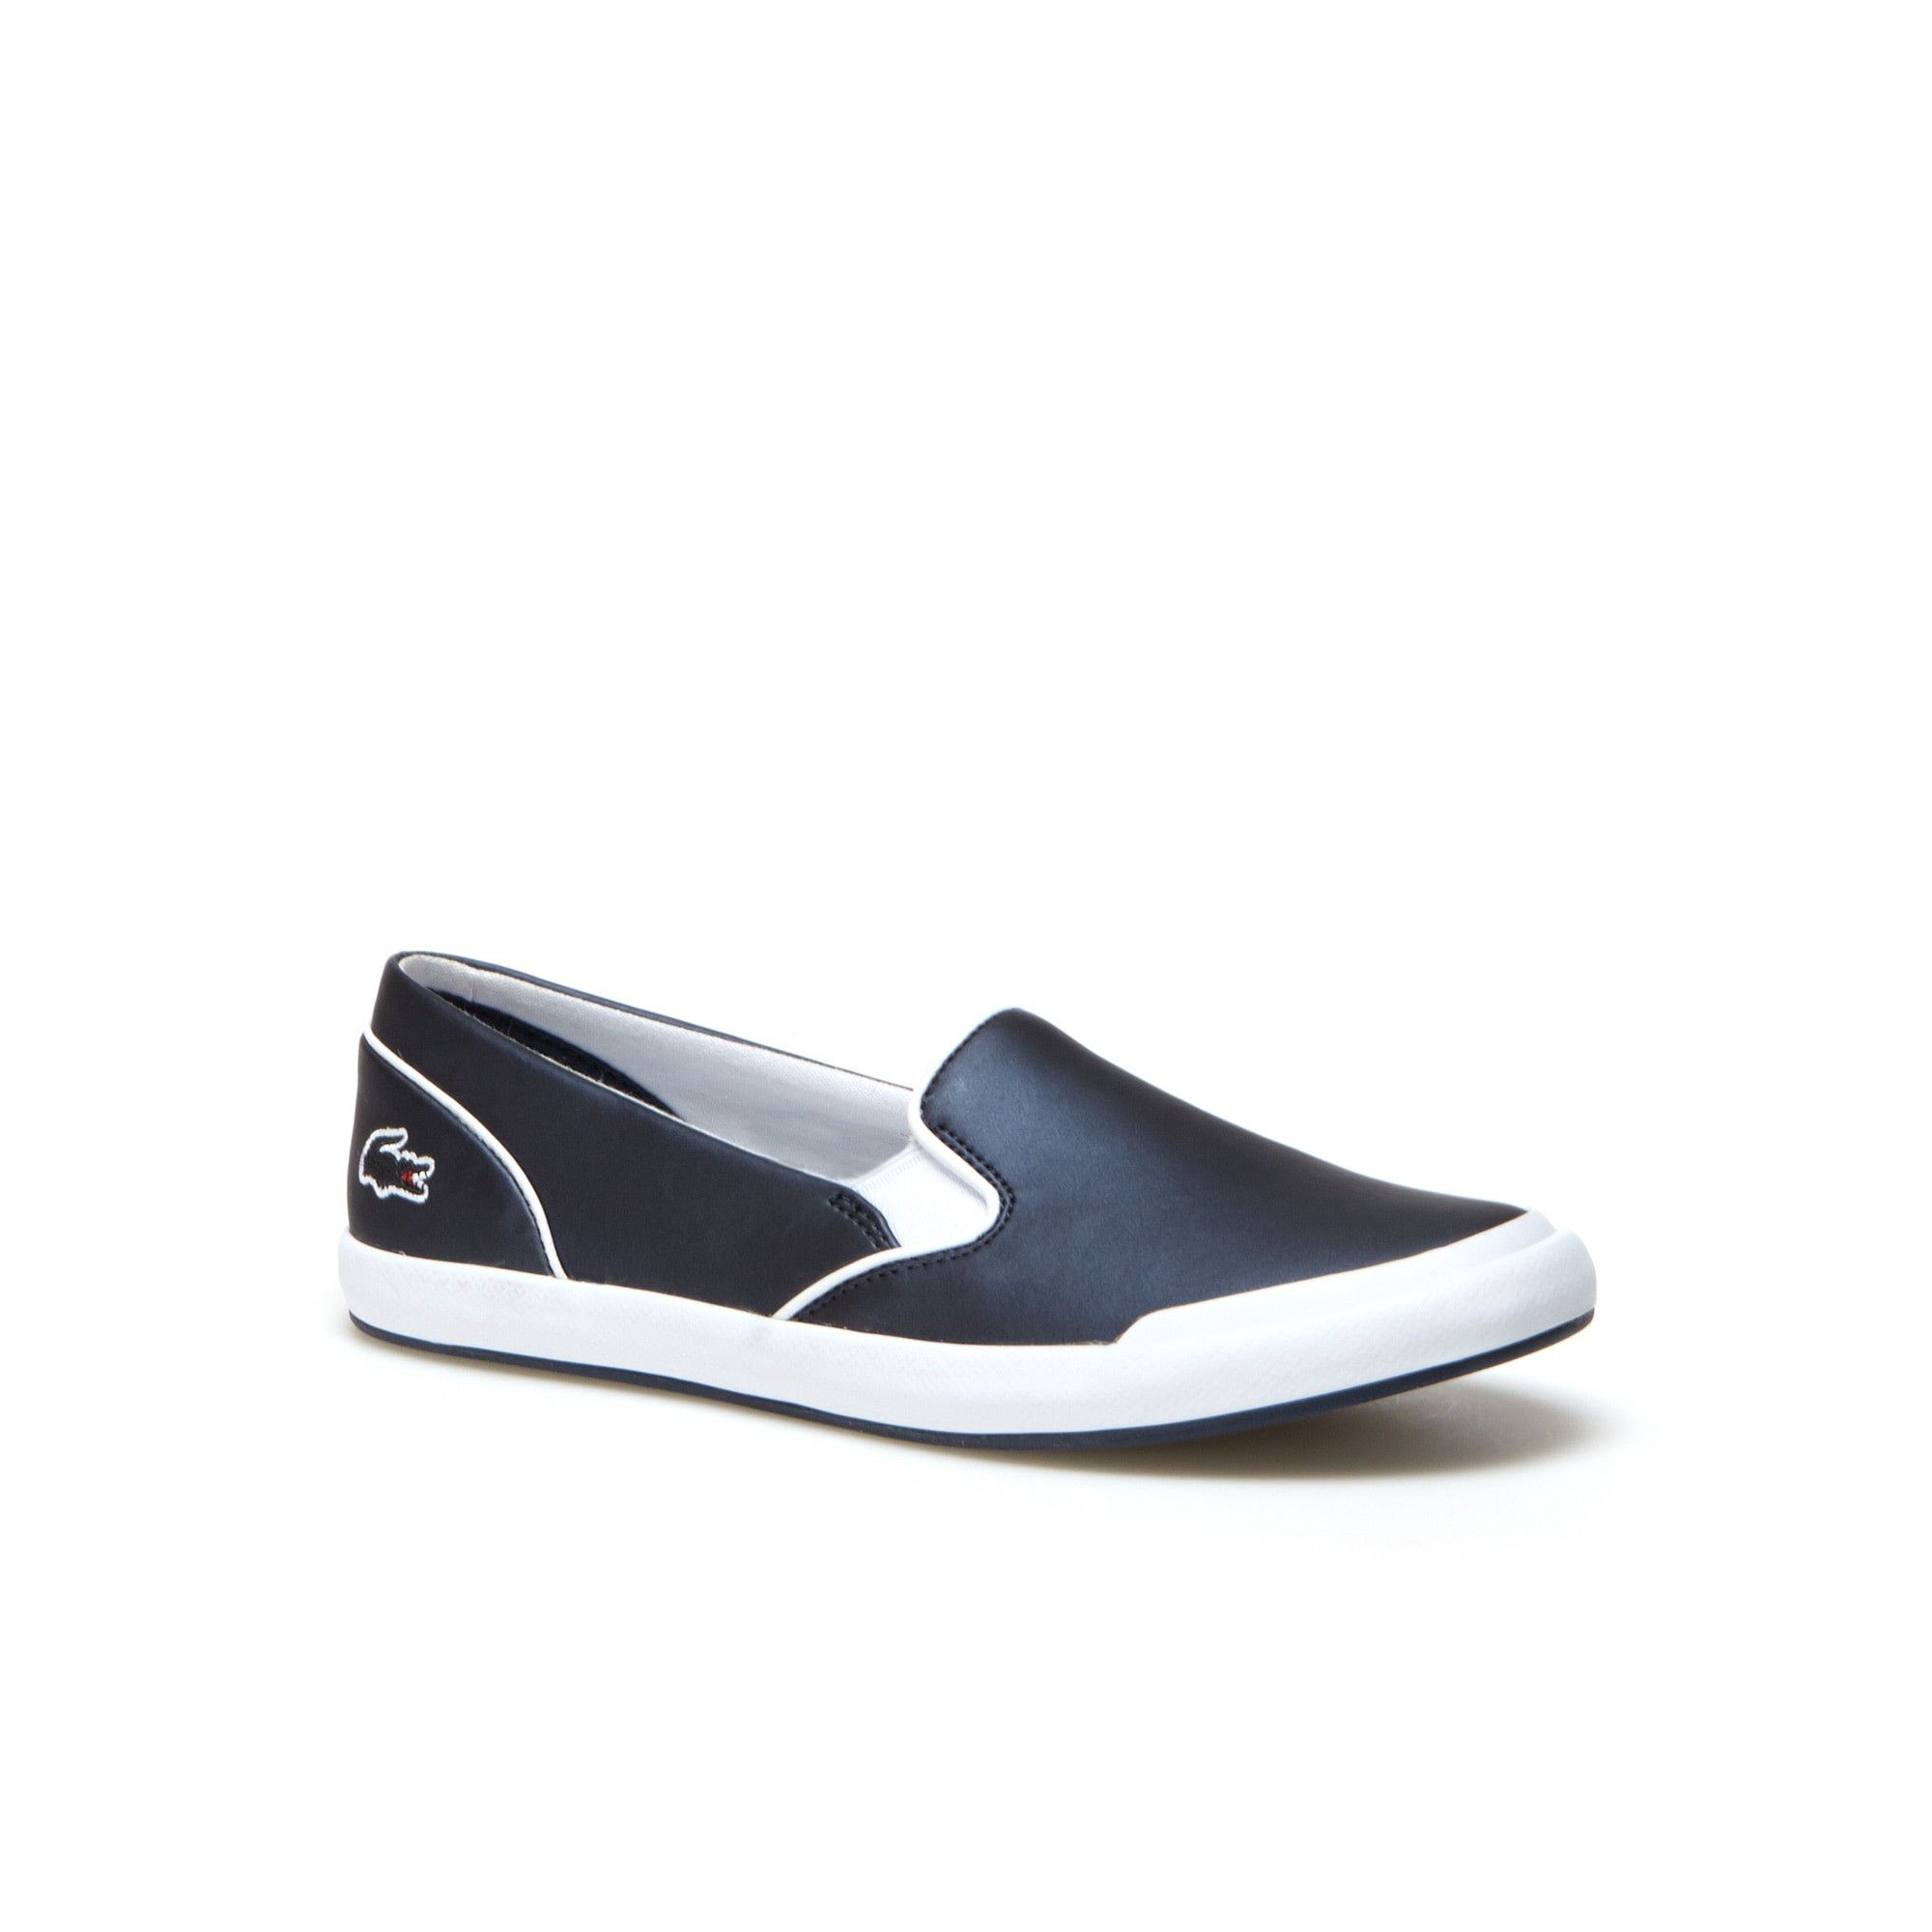 8c8519f79 LACOSTE Women s Lancelle Matte Metallized Slip-Ons - navy.  lacoste  shoes